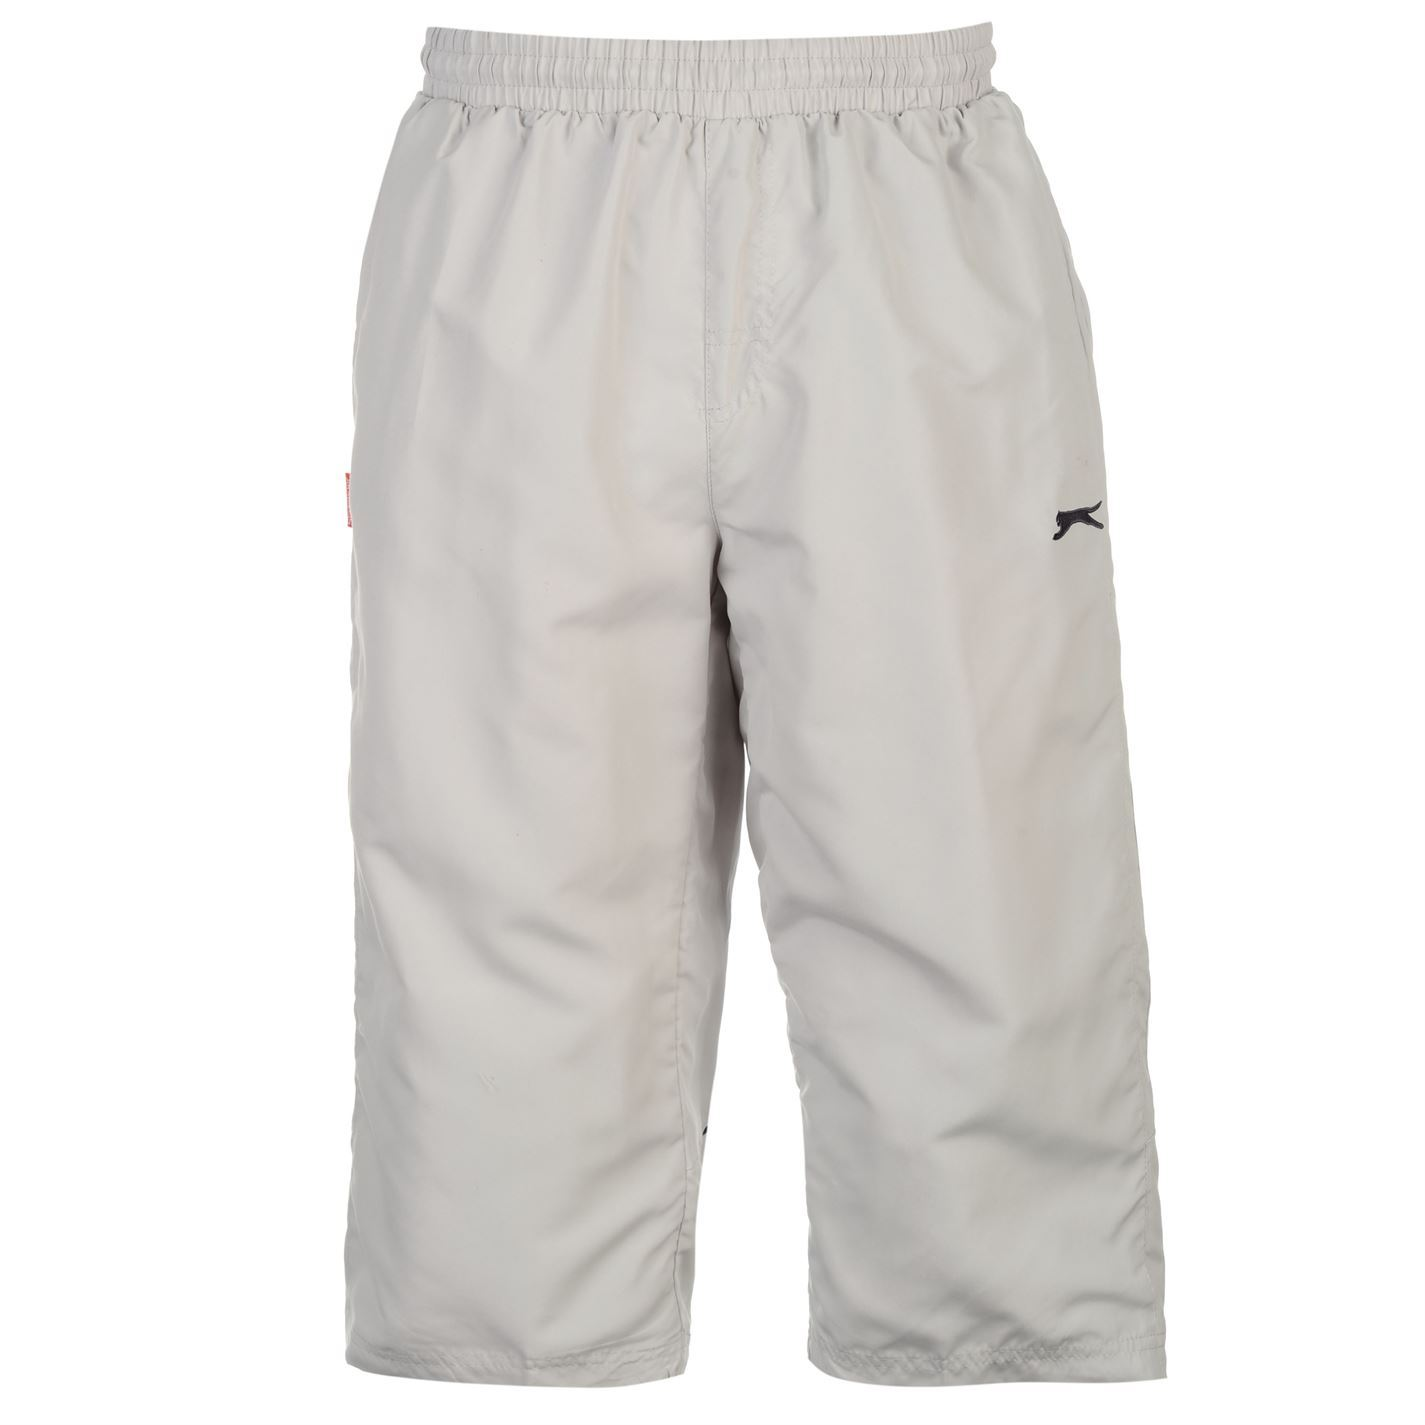 Tiro Three-Quarter Pants Ventilated pants for committed training. Stay cool, and focus on speed and footwork. These men's three-quarter soccer training pants let you warm up without specialtysports.ga: $